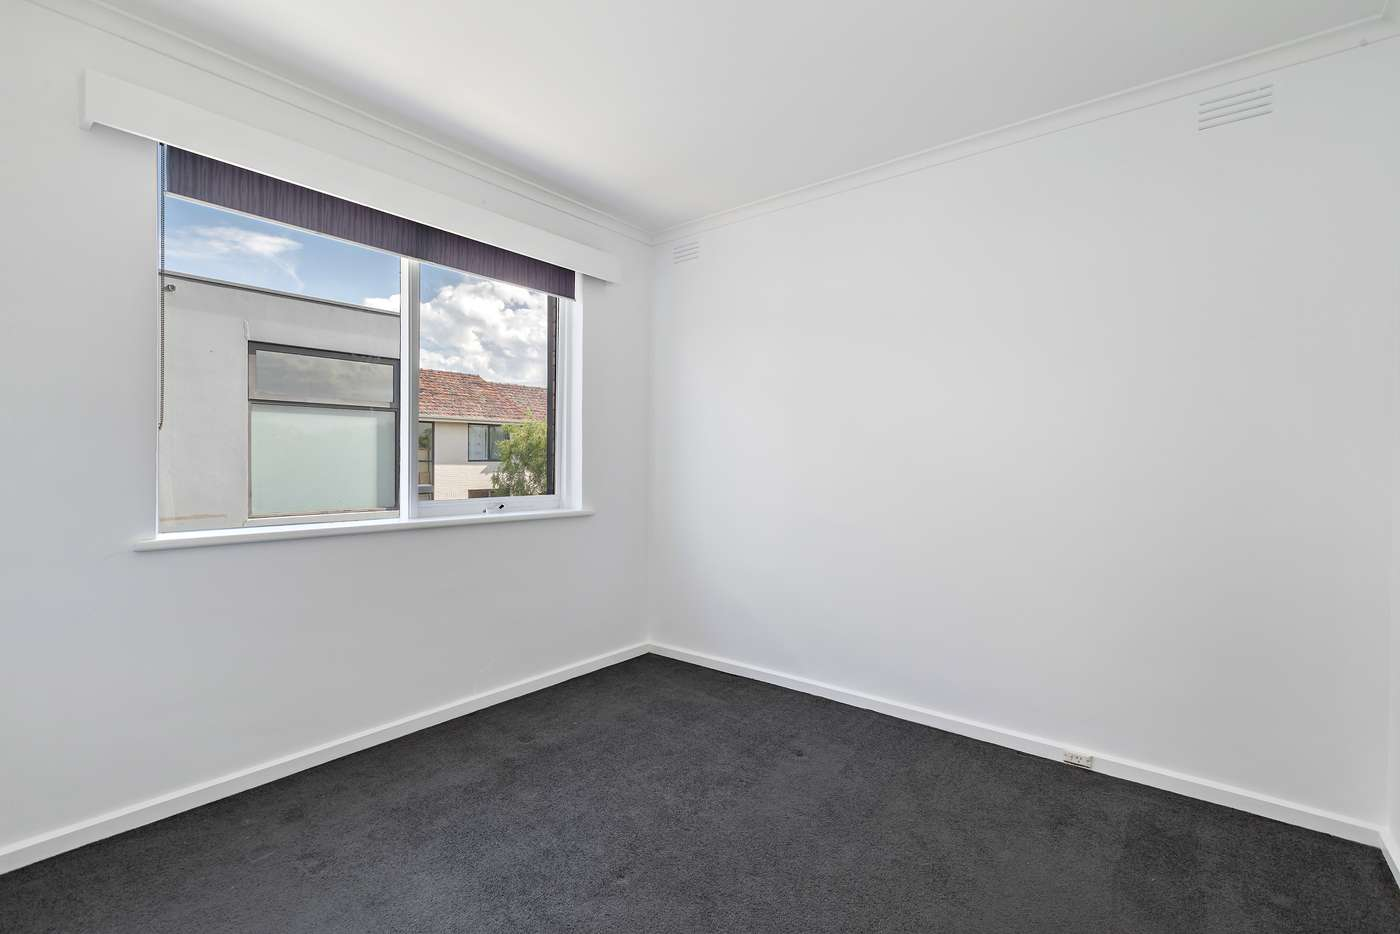 Fifth view of Homely apartment listing, 7/25 Irving Avenue, Prahran VIC 3181